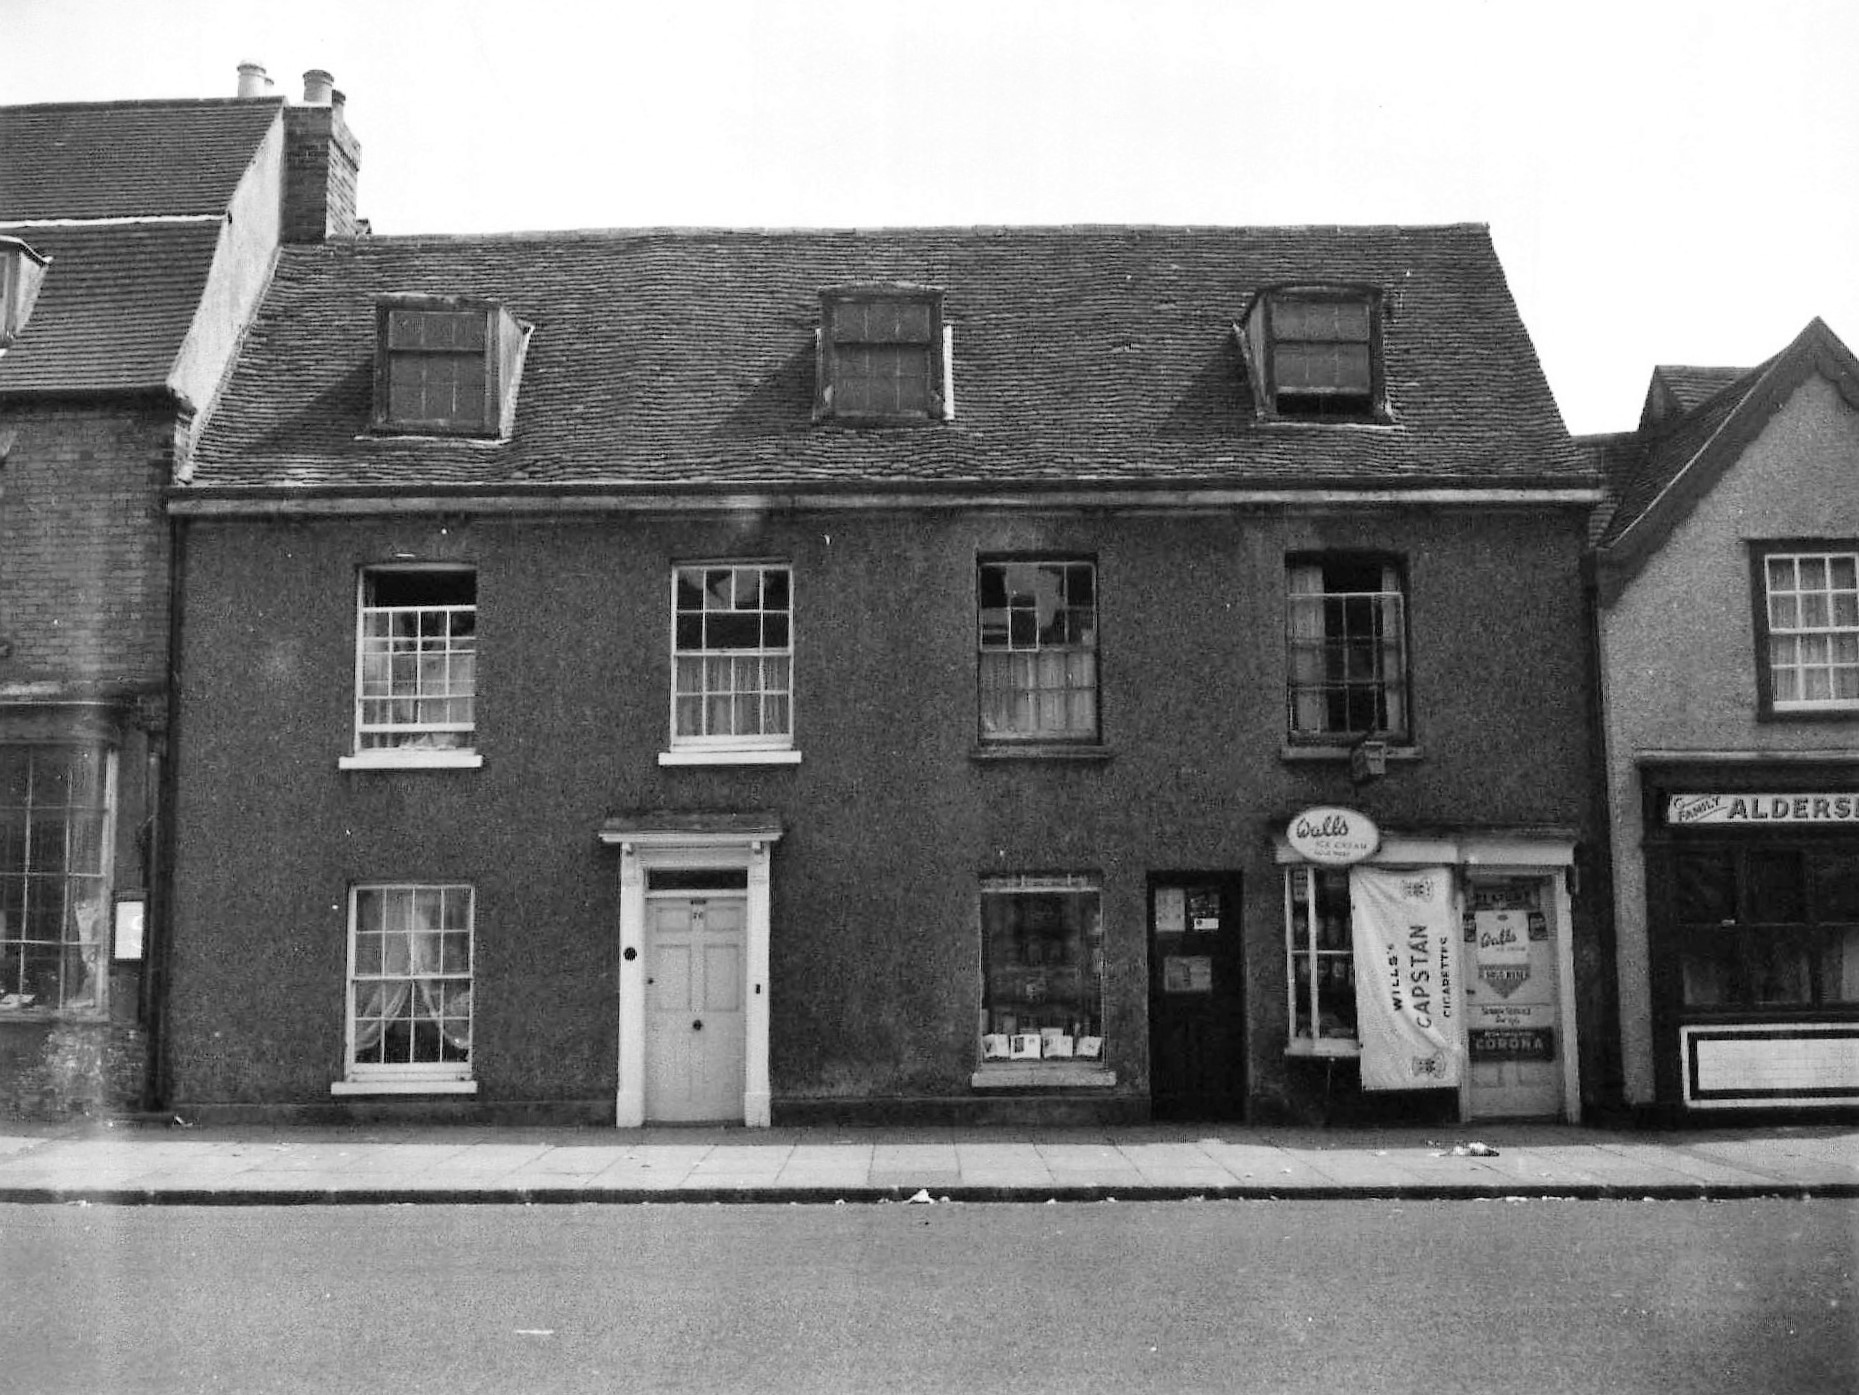 76 and 78 High Street